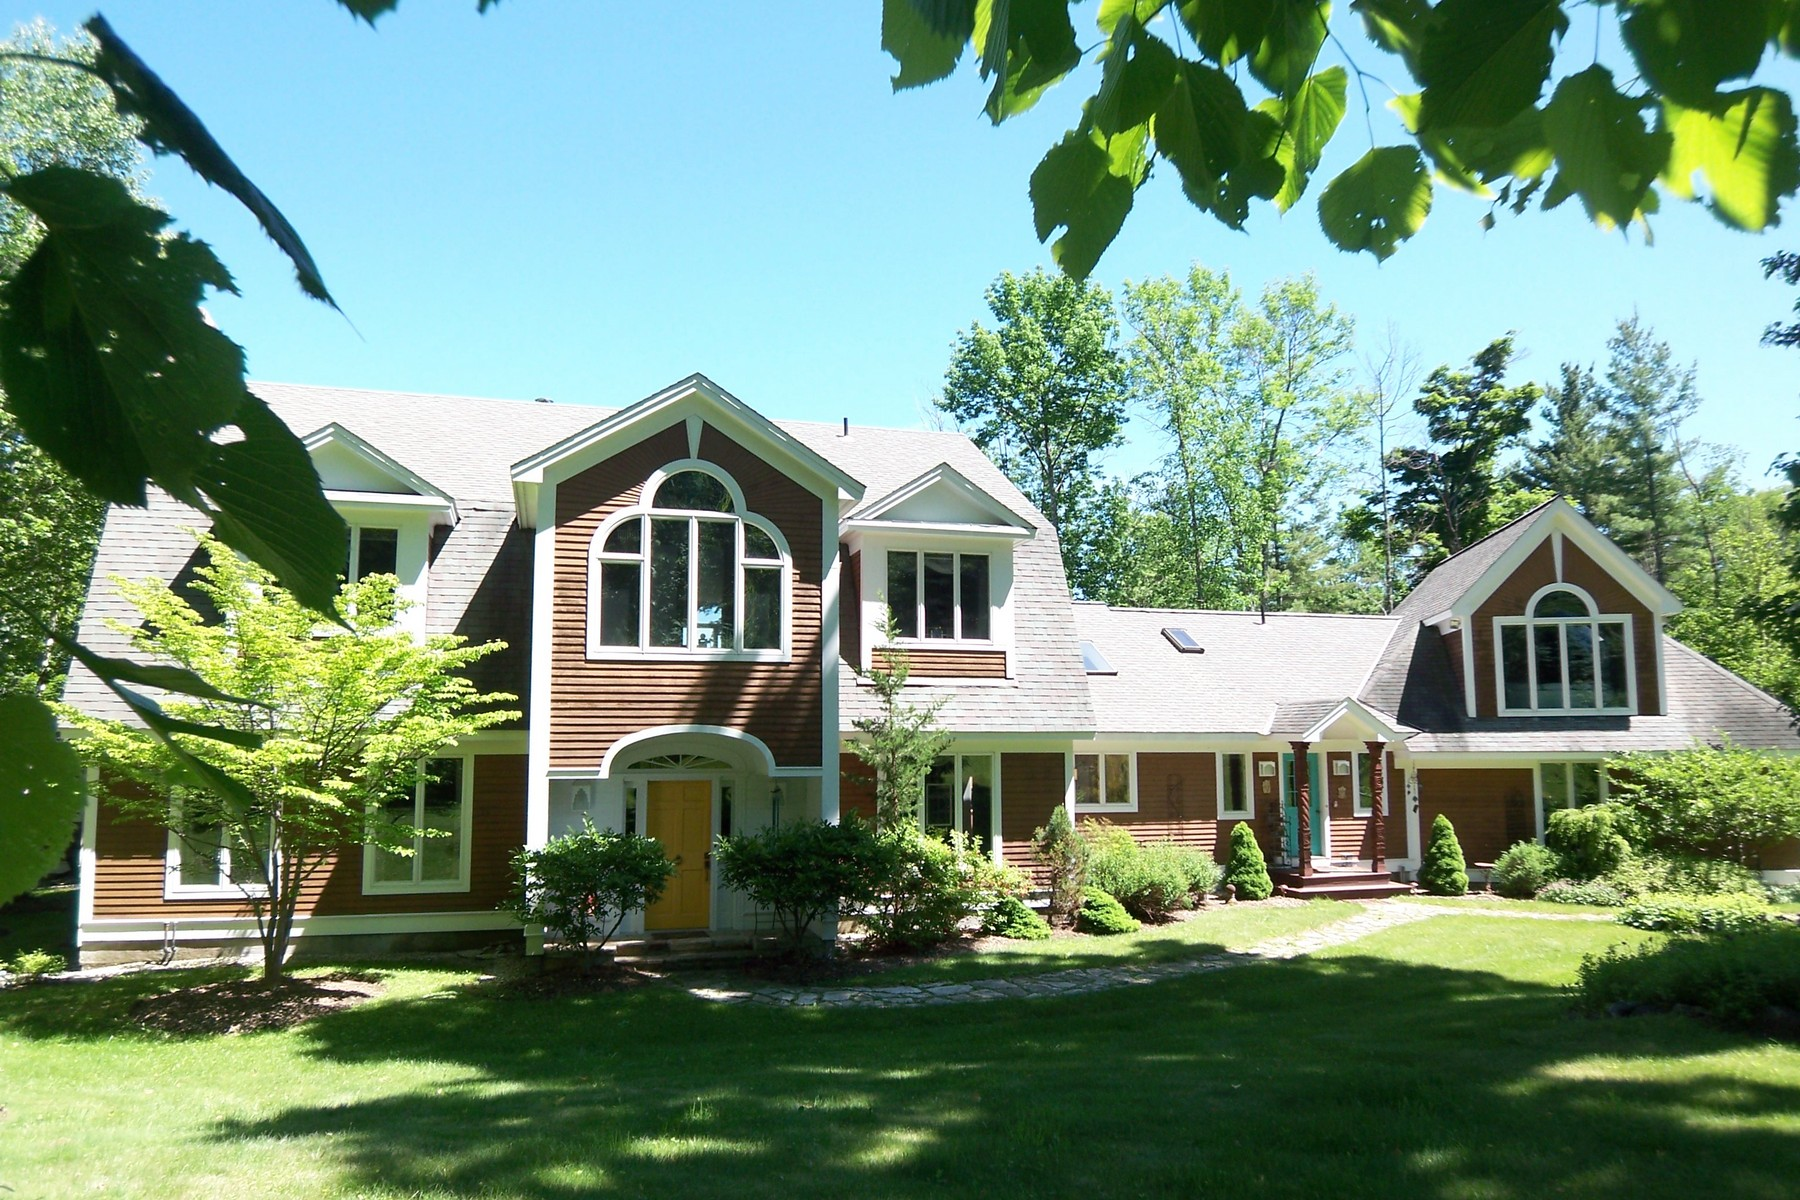 Single Family Home for Sale at 154 Spruce Lane, Dorset 154 Spruce Ln Dorset, Vermont 05251 United States